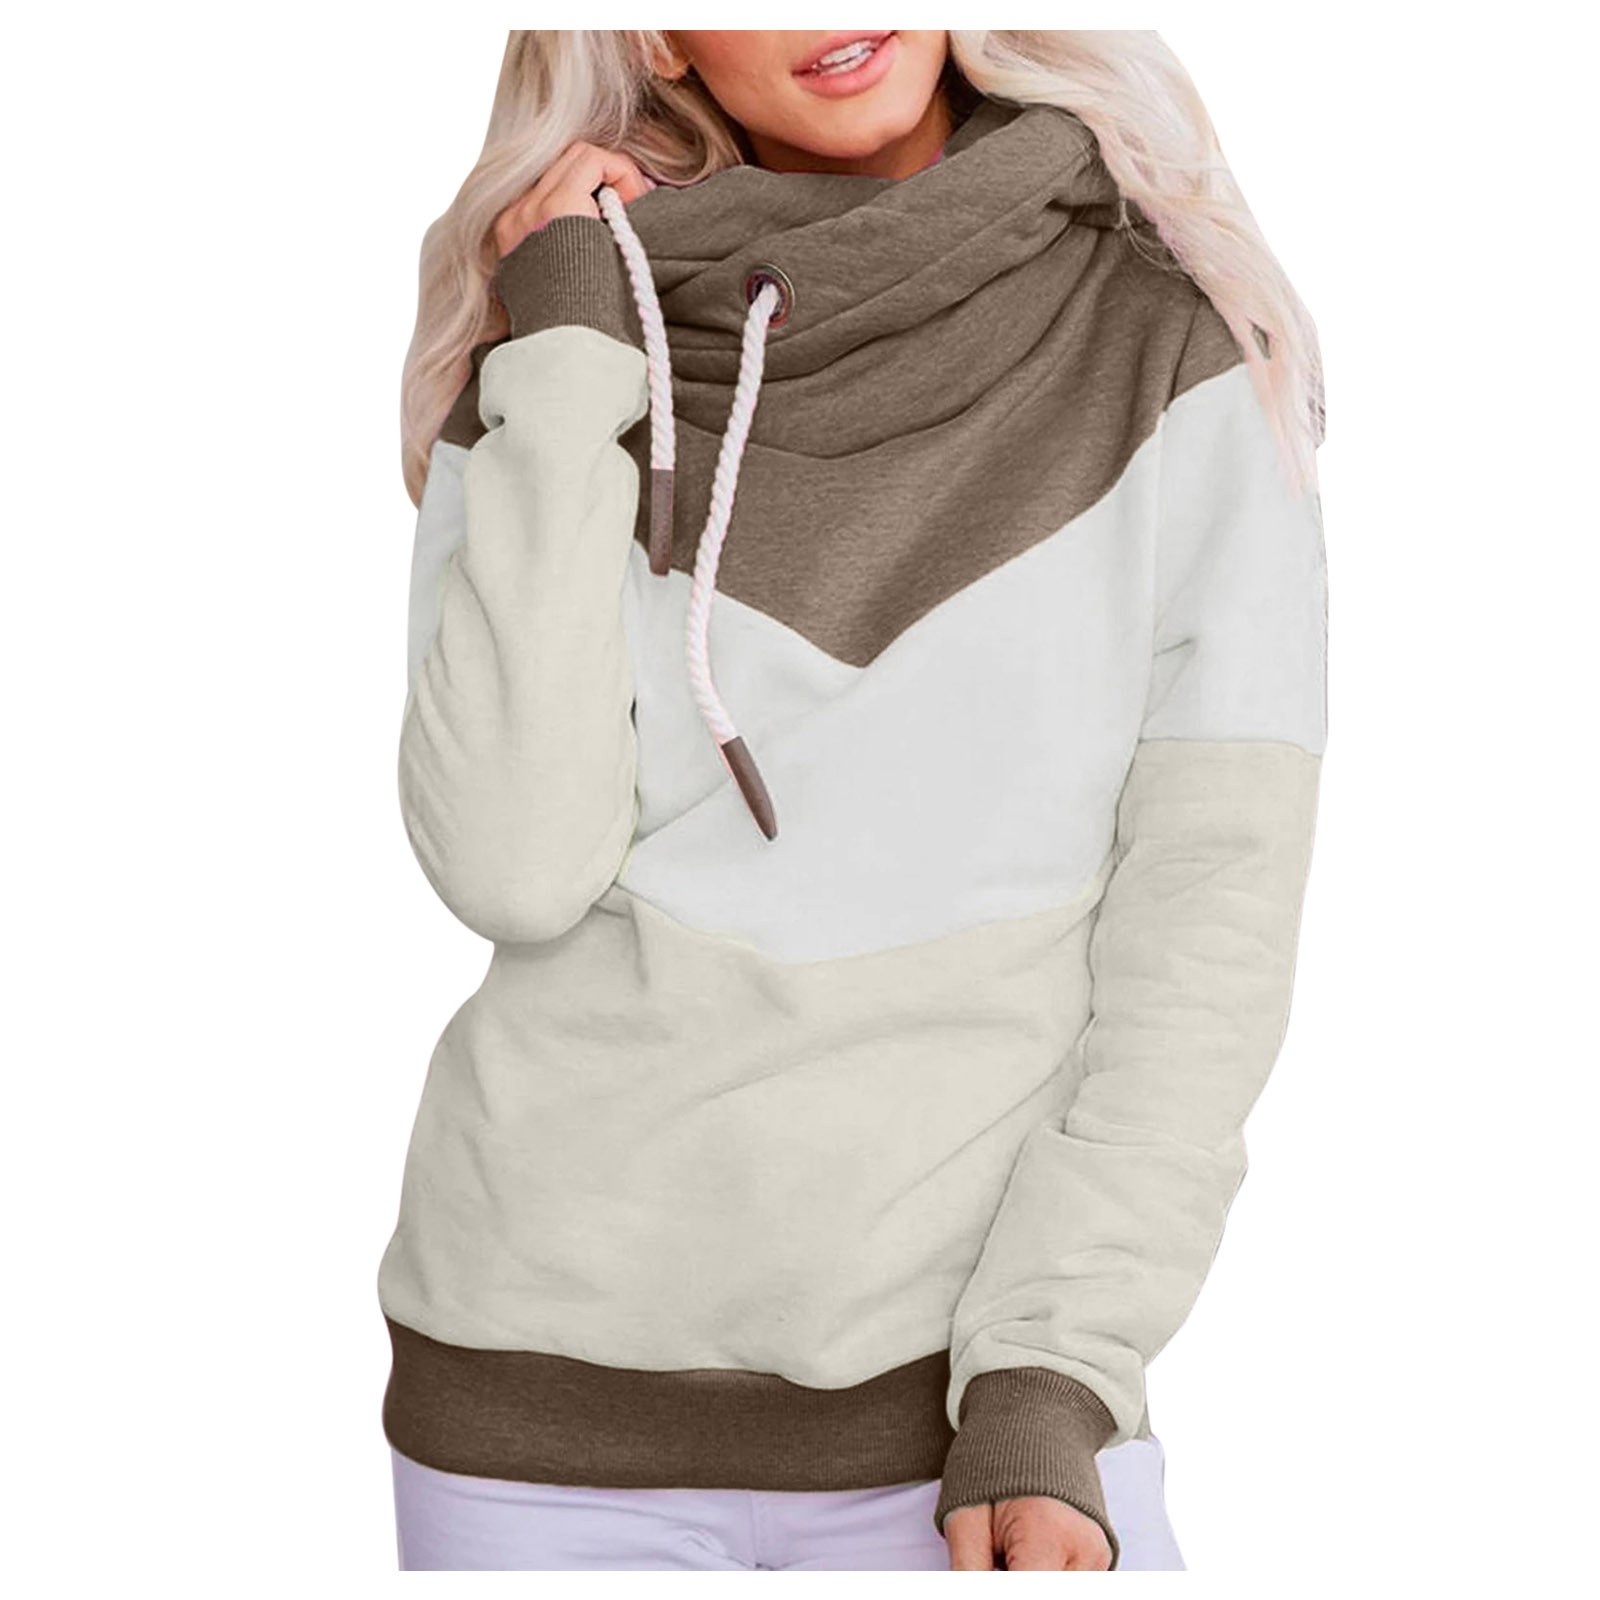 Hot Sale Women Casual Solid Contrast Long Sleeve Hoodie Sweatshirt Patchwork Printed Tops Sudaderas Mujer 2020 F Fast Ship 15